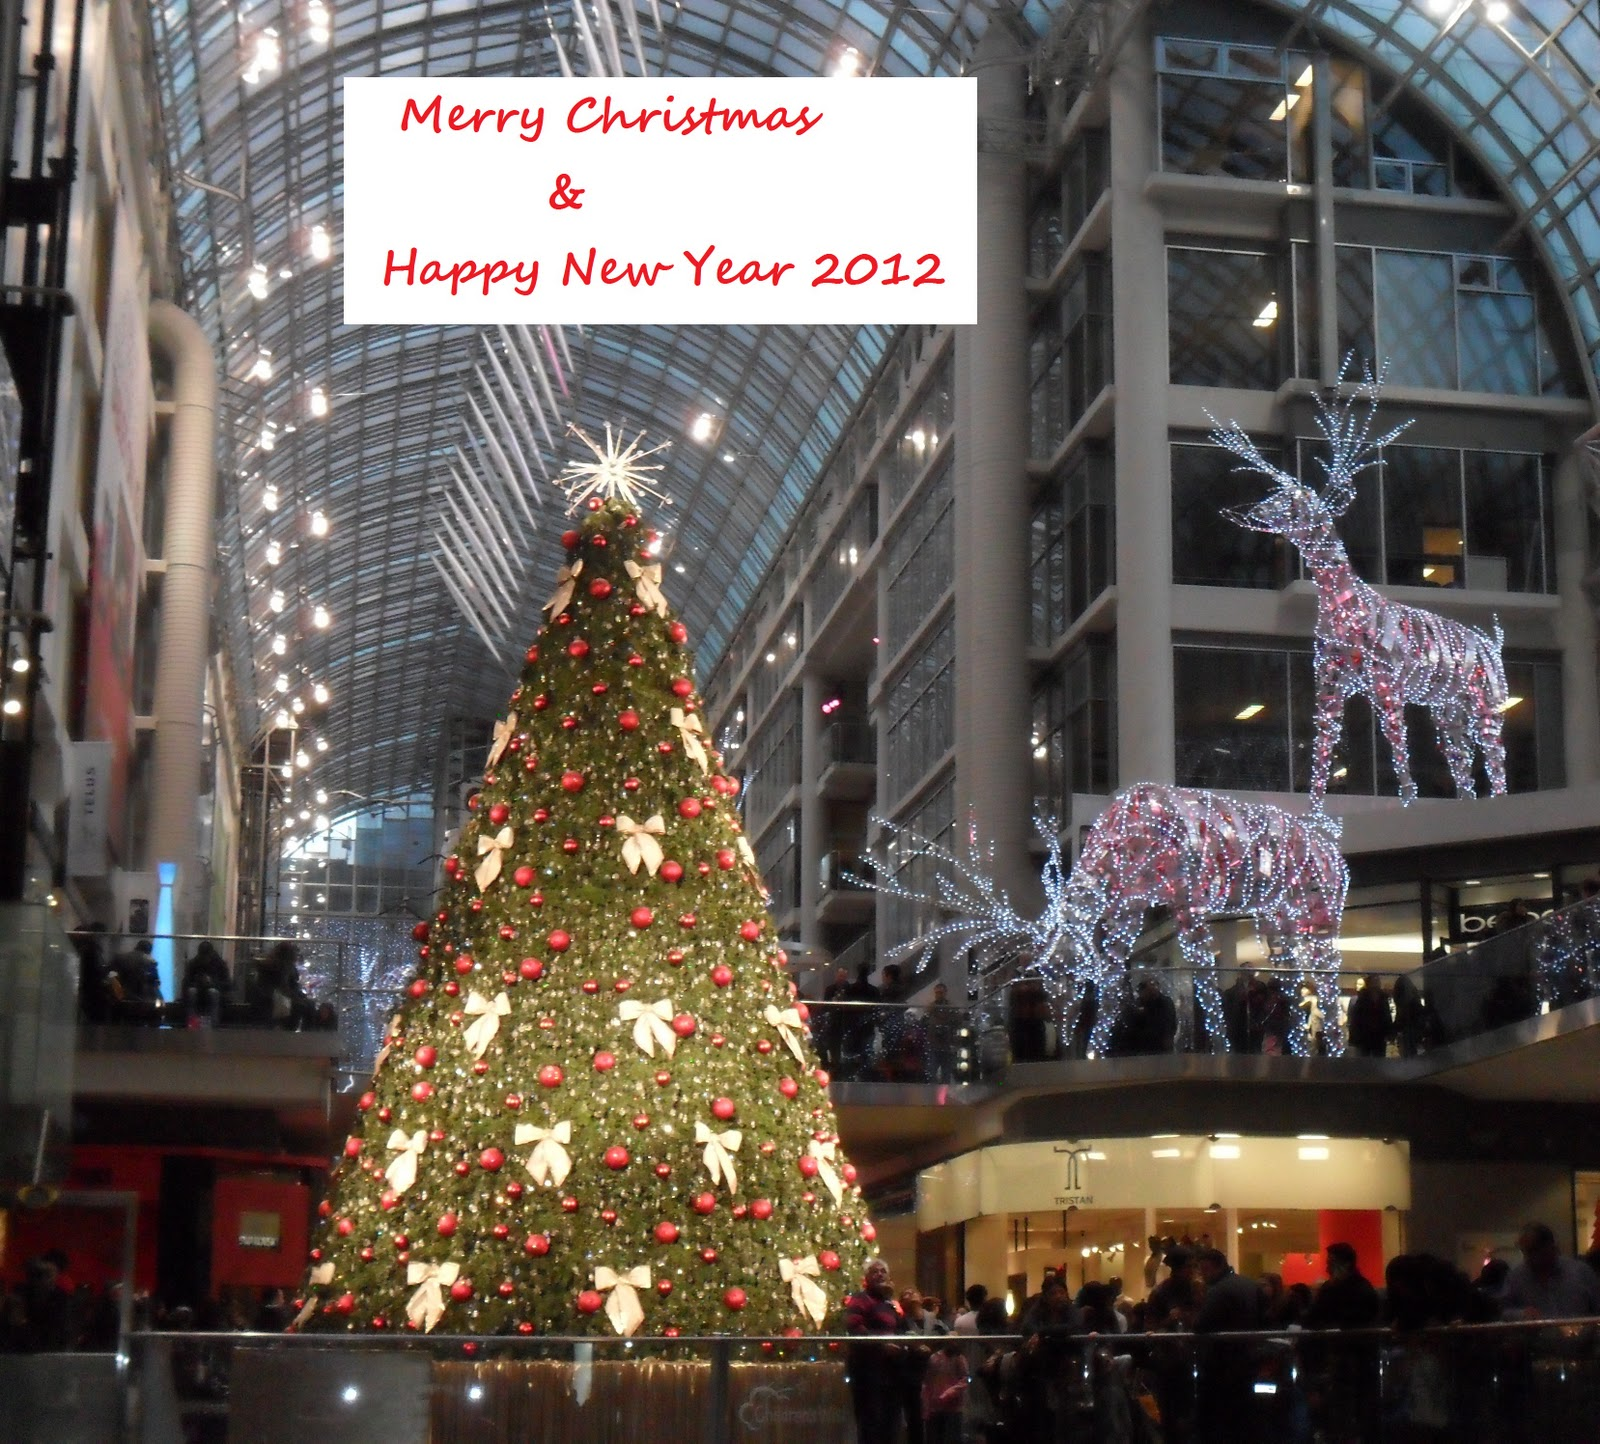 Hello Toronto: Merry Christmas From Toronto: Juha & Nuudia